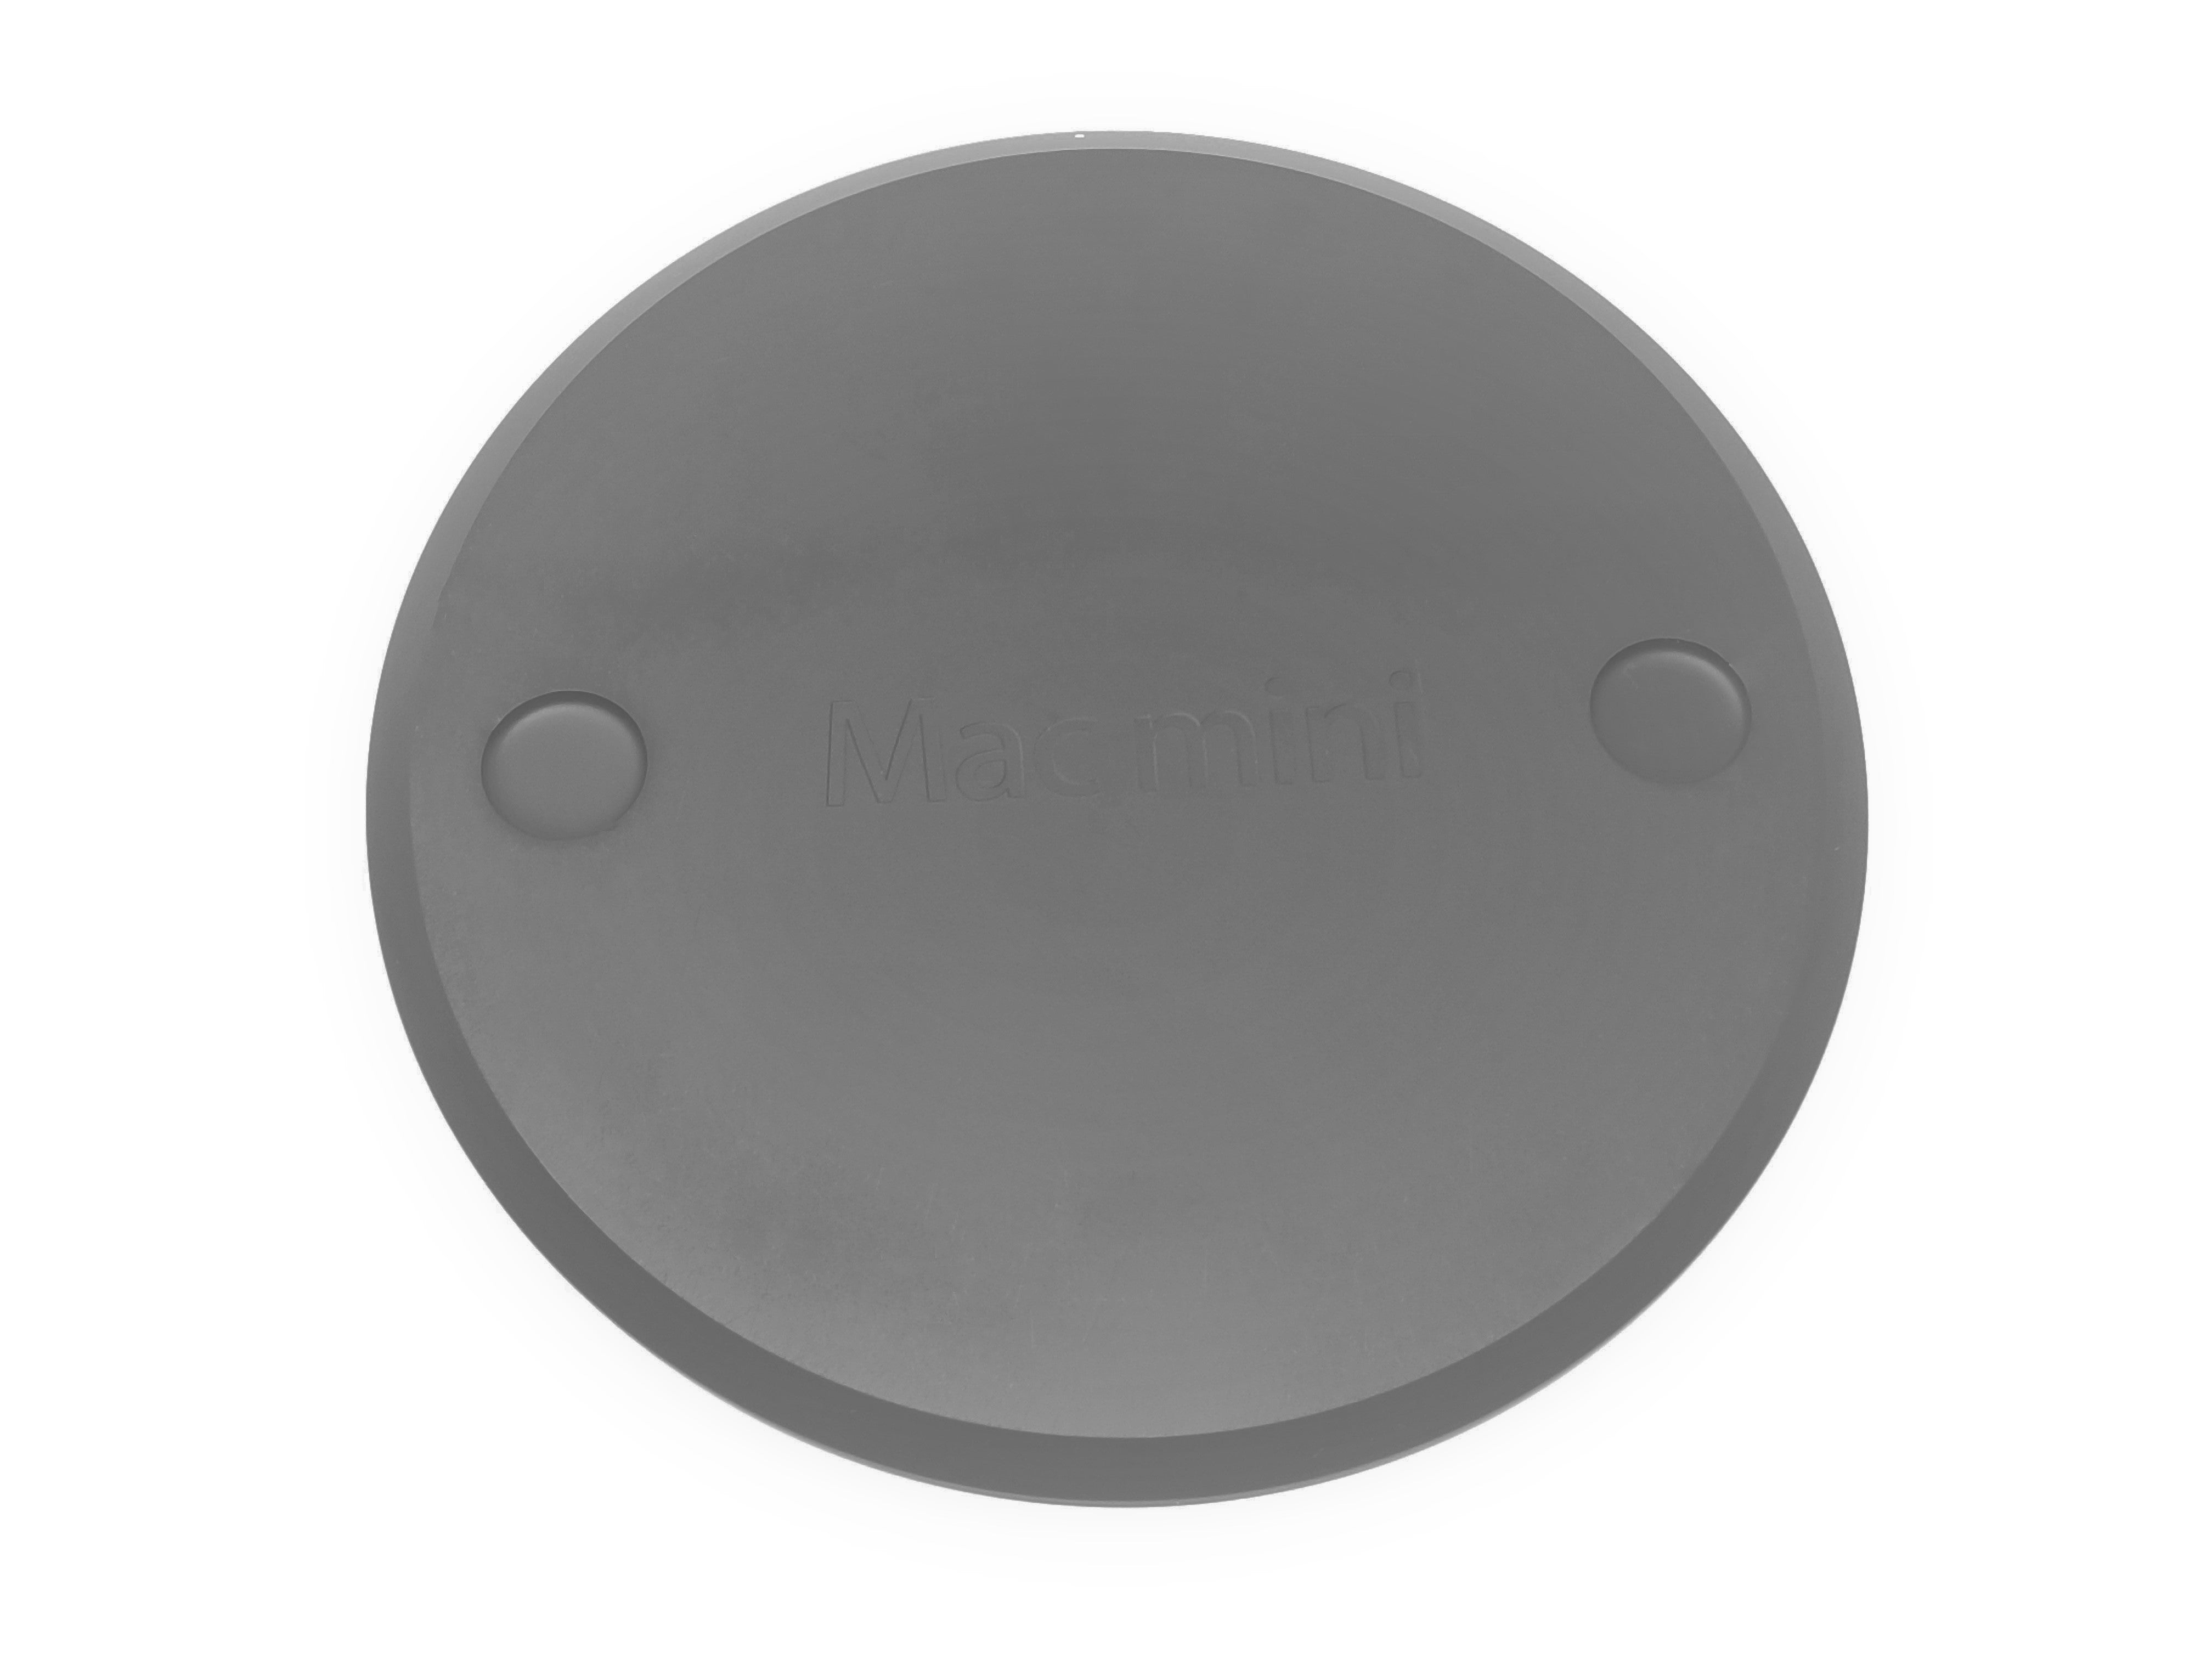 Apple Mac Mini A1347 (Late 2012) Bottom / Base Cover - 922-9951